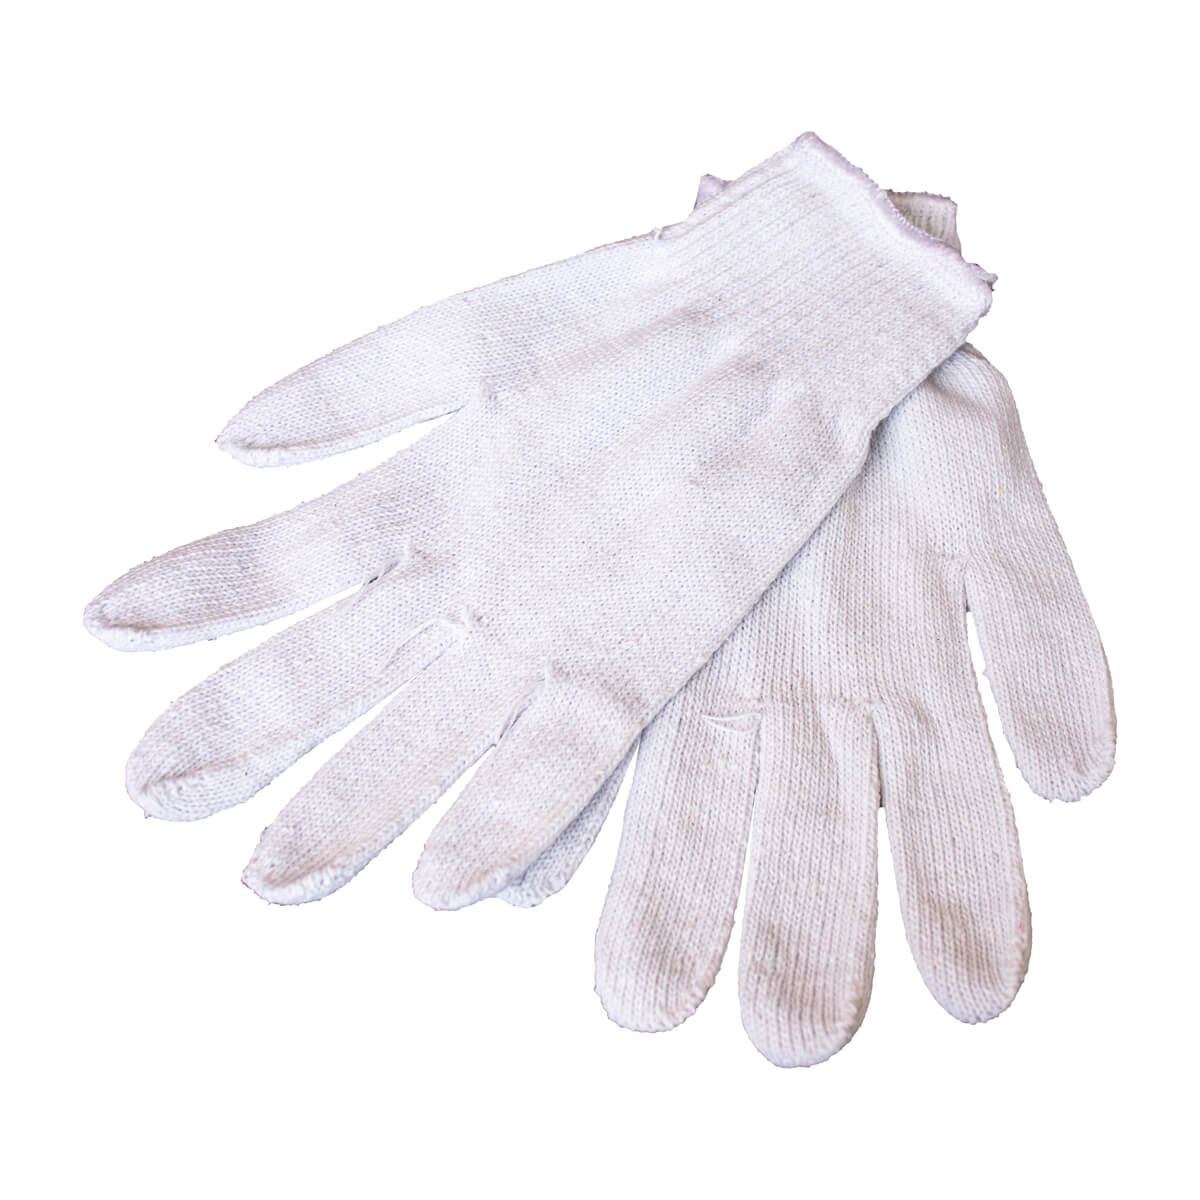 Gloves Poly/Cotton Knited Large MaxiSafe